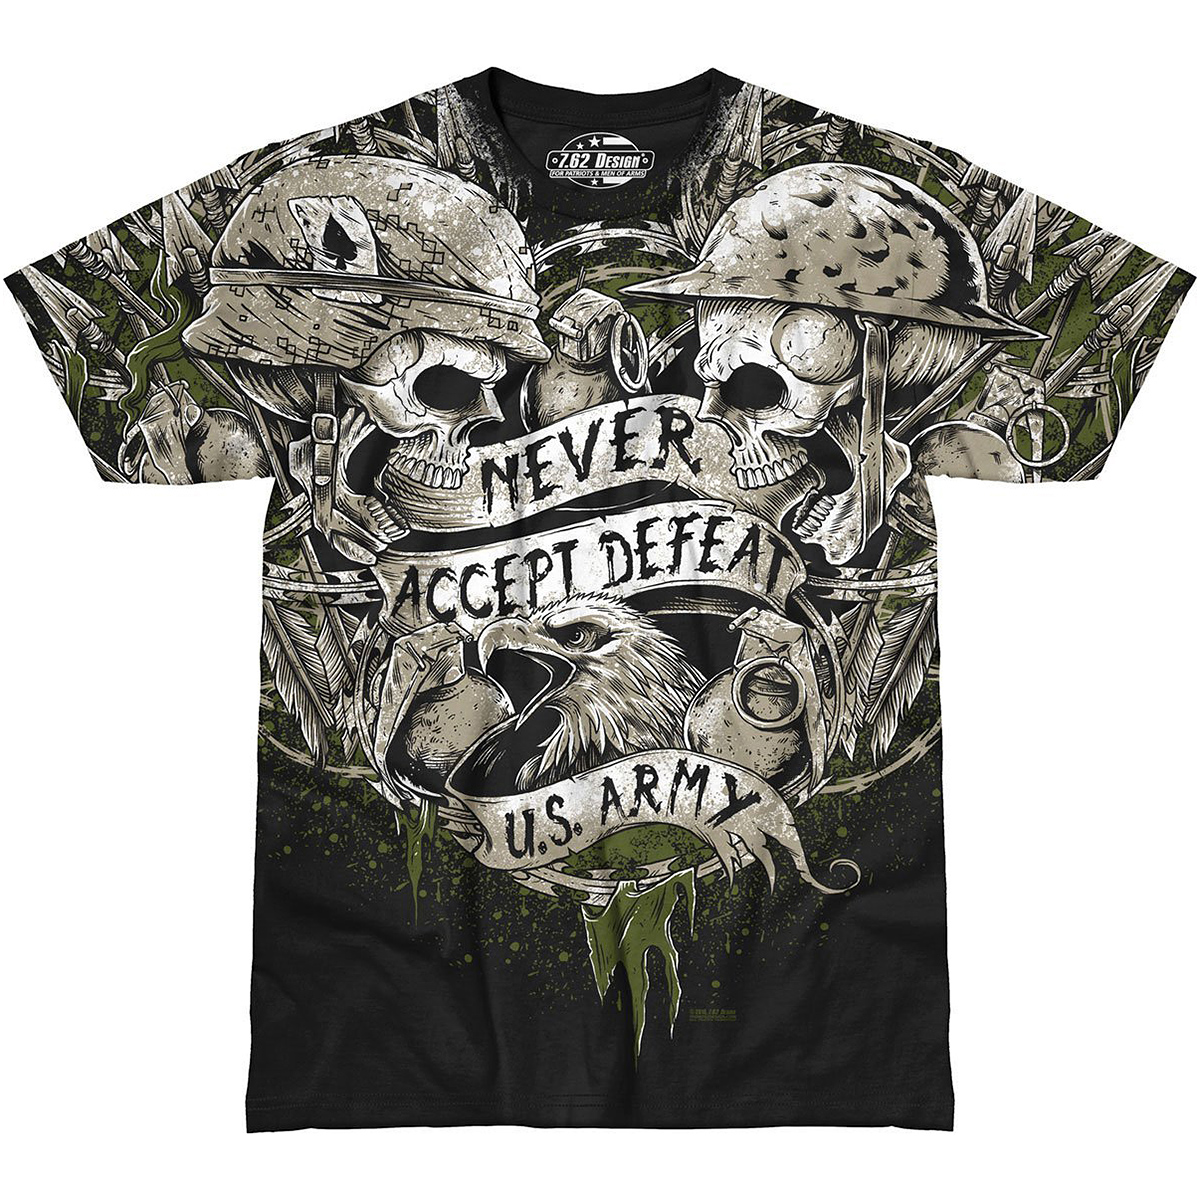 Sentinel 7.62 DESIGN MENS TEE ARMY NEVER ACCEPT DEFEAT T-SHIRT MILITARY  COMBAT TOP BLACK c897b79667e